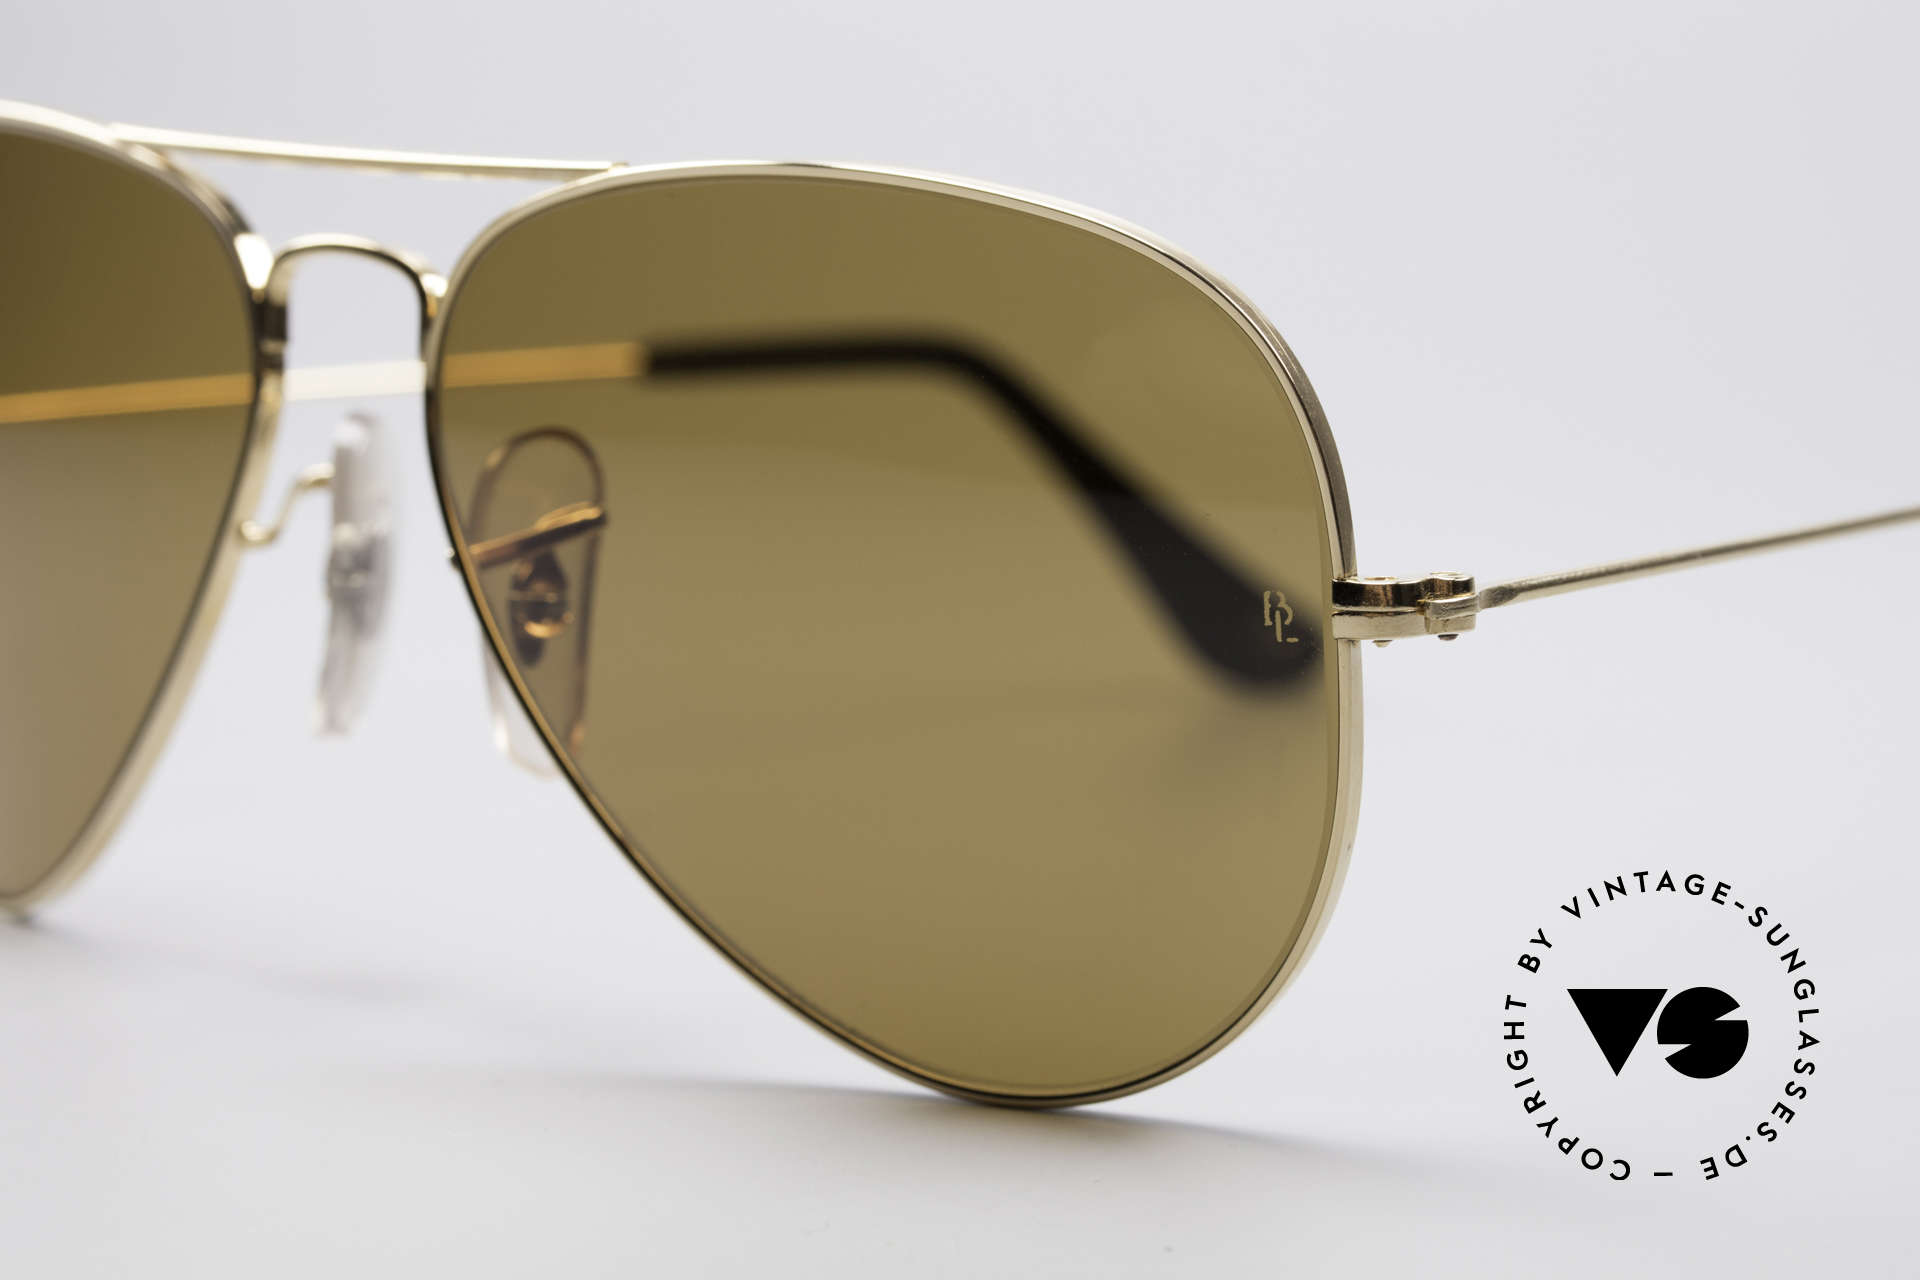 Ray Ban Large Metal Driving Chromax, B&L Chromax lenses (Color Contrast Technology), Made for Men and Women